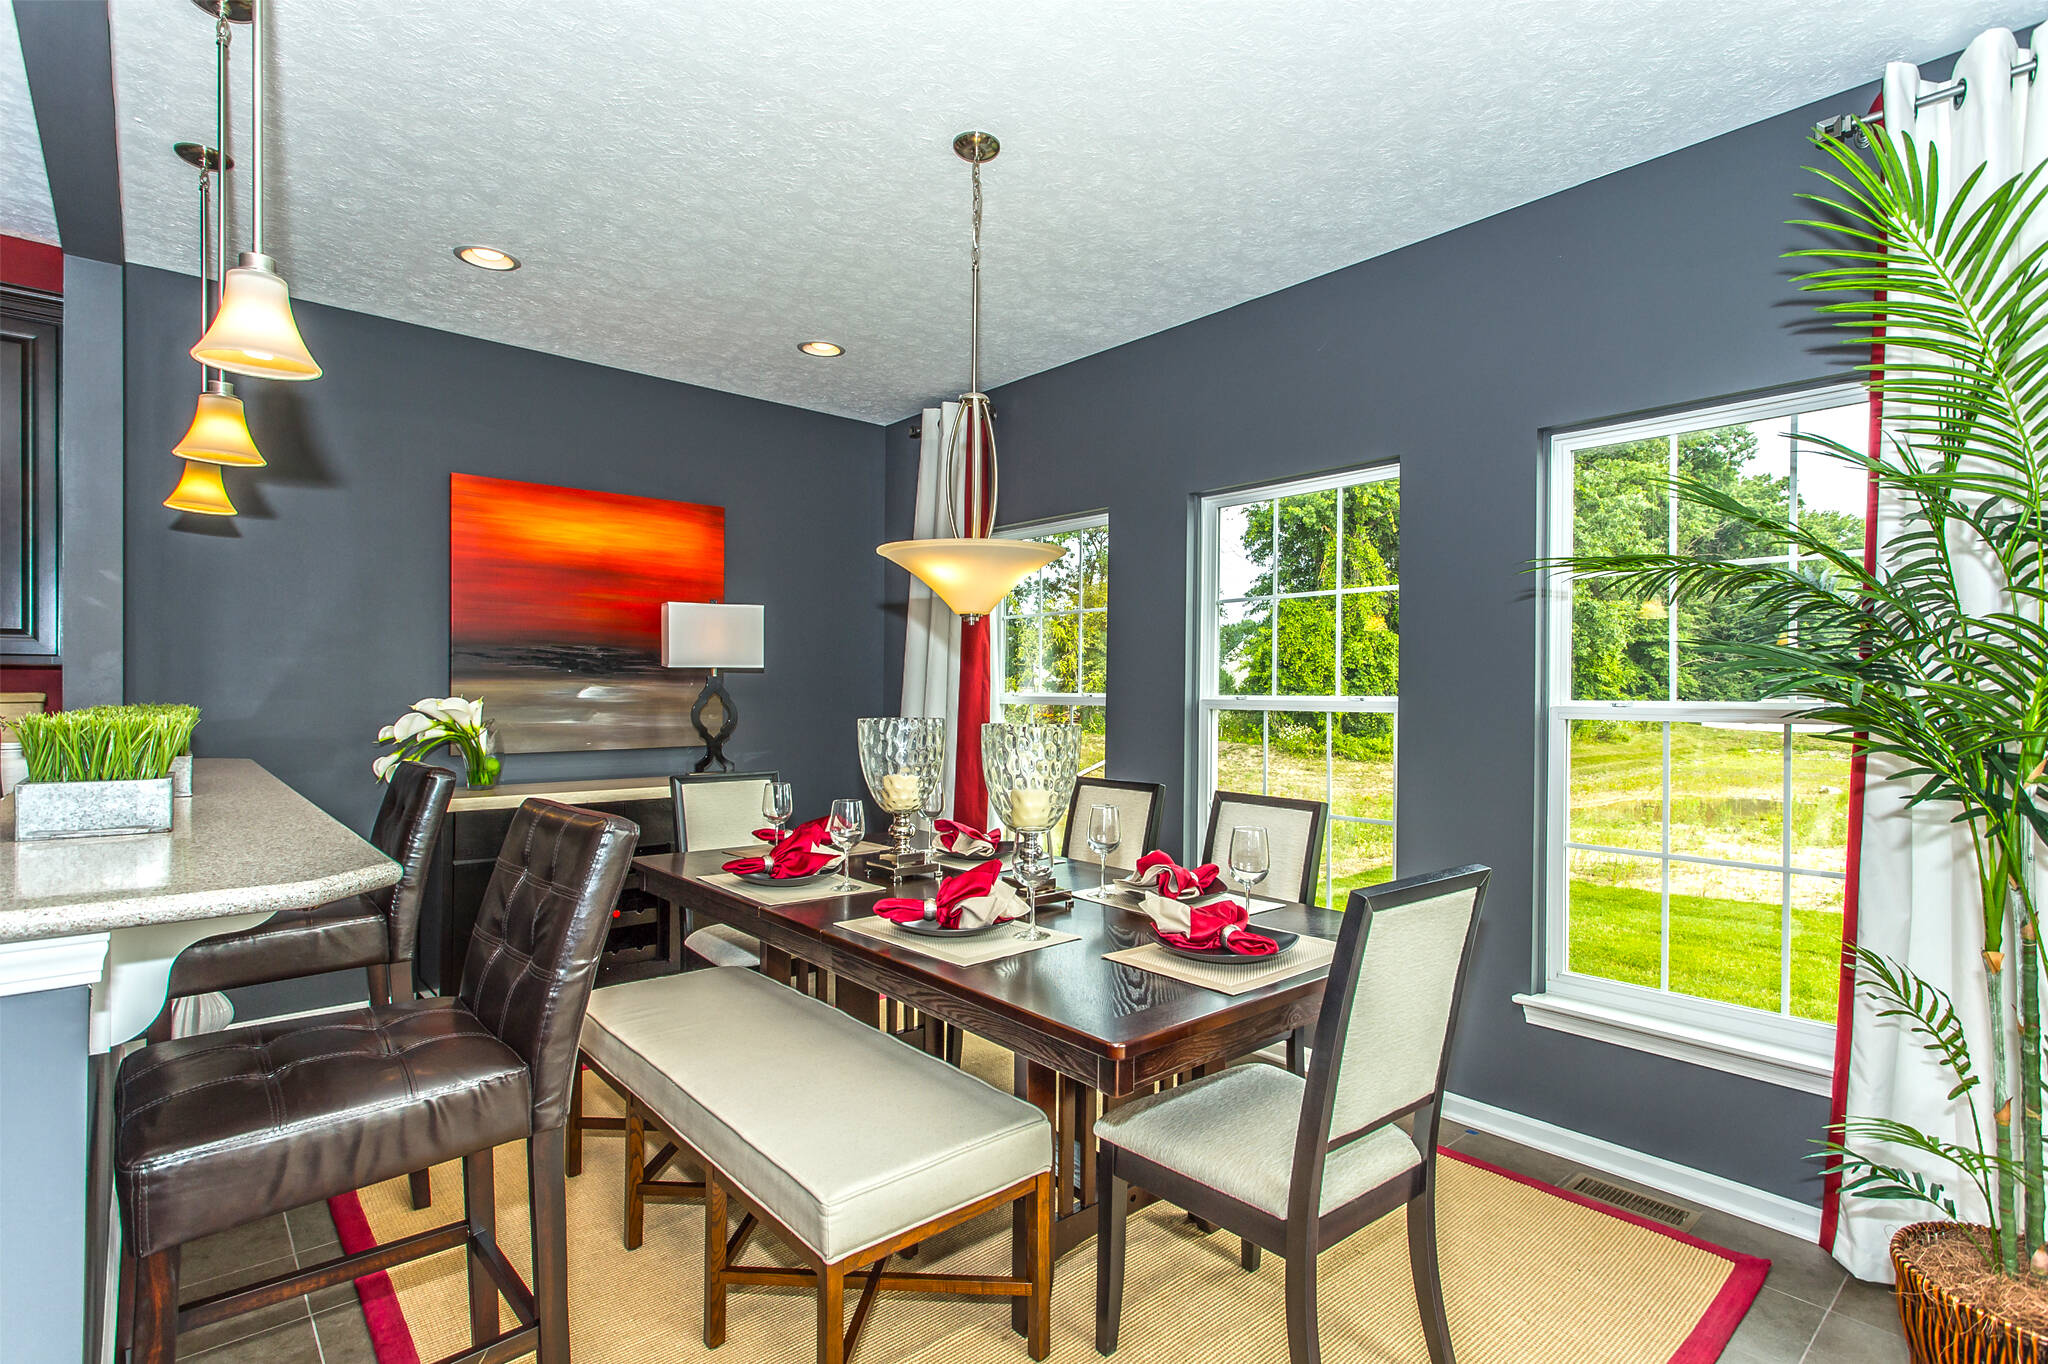 wellington morningroom k hovnanian homes northeast ohio